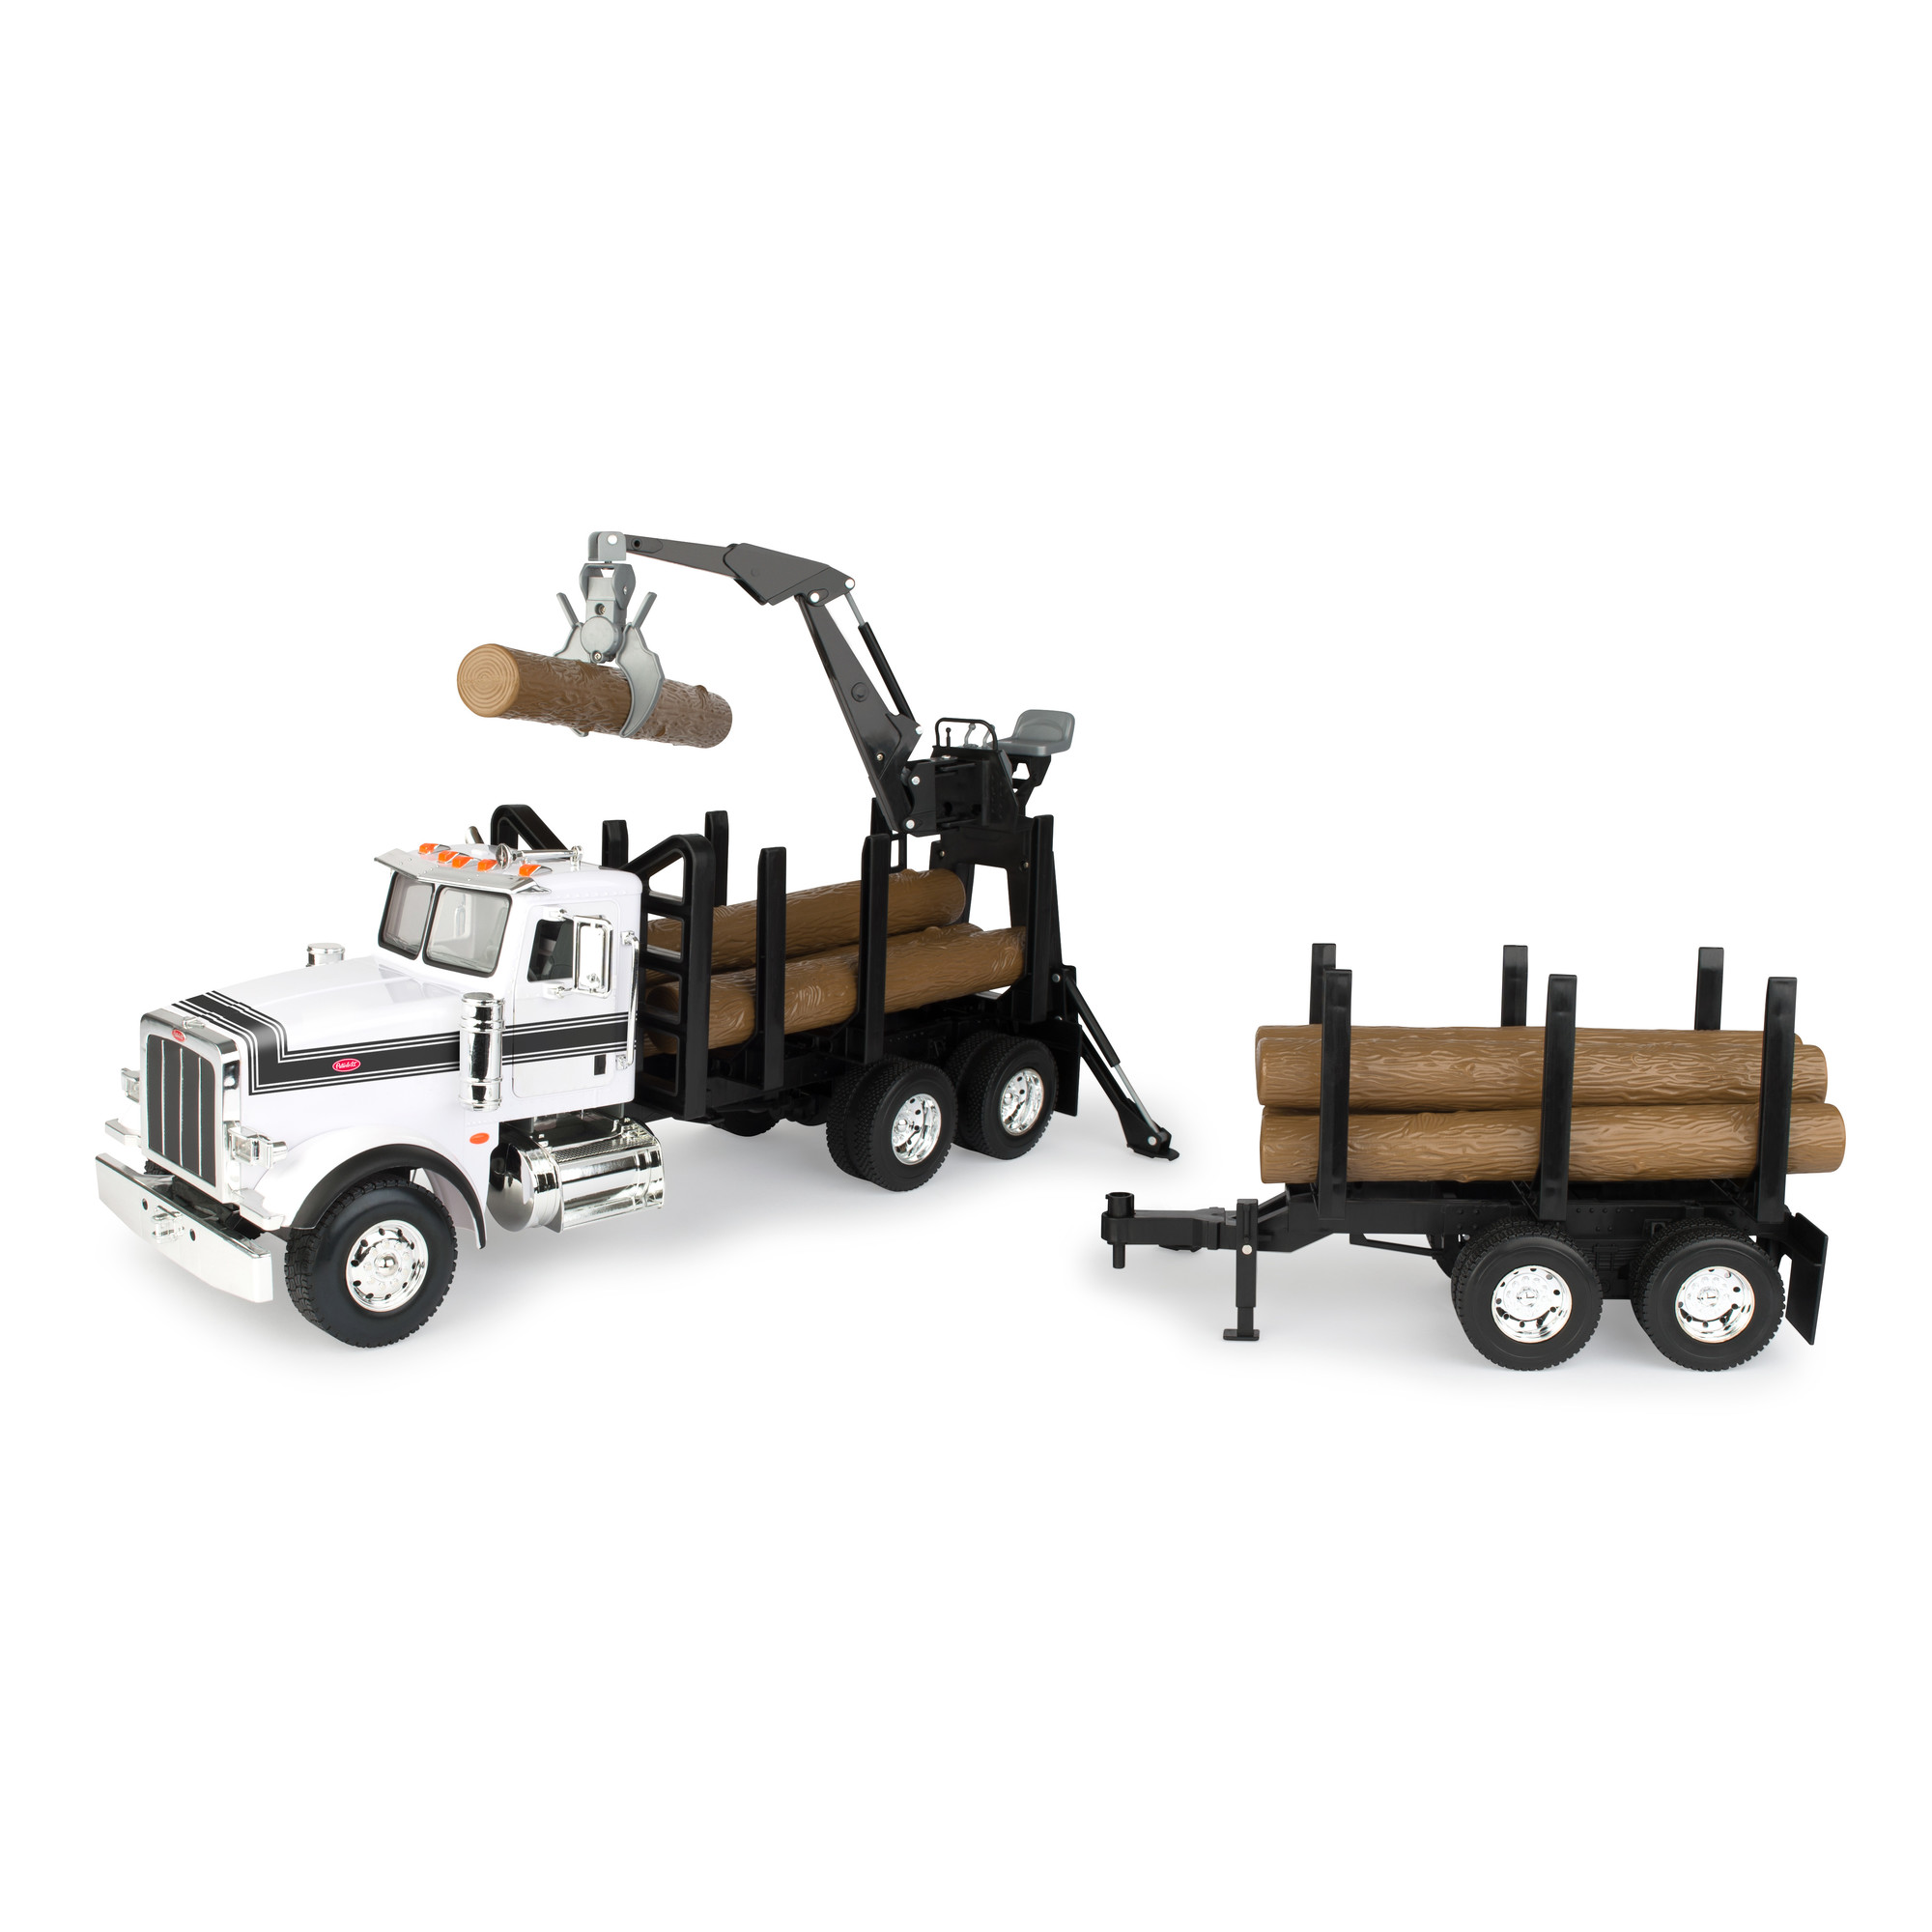 Big Farm Peterbilt Model 367 Logging Truck with Pup Trailer and Logs by TOMY